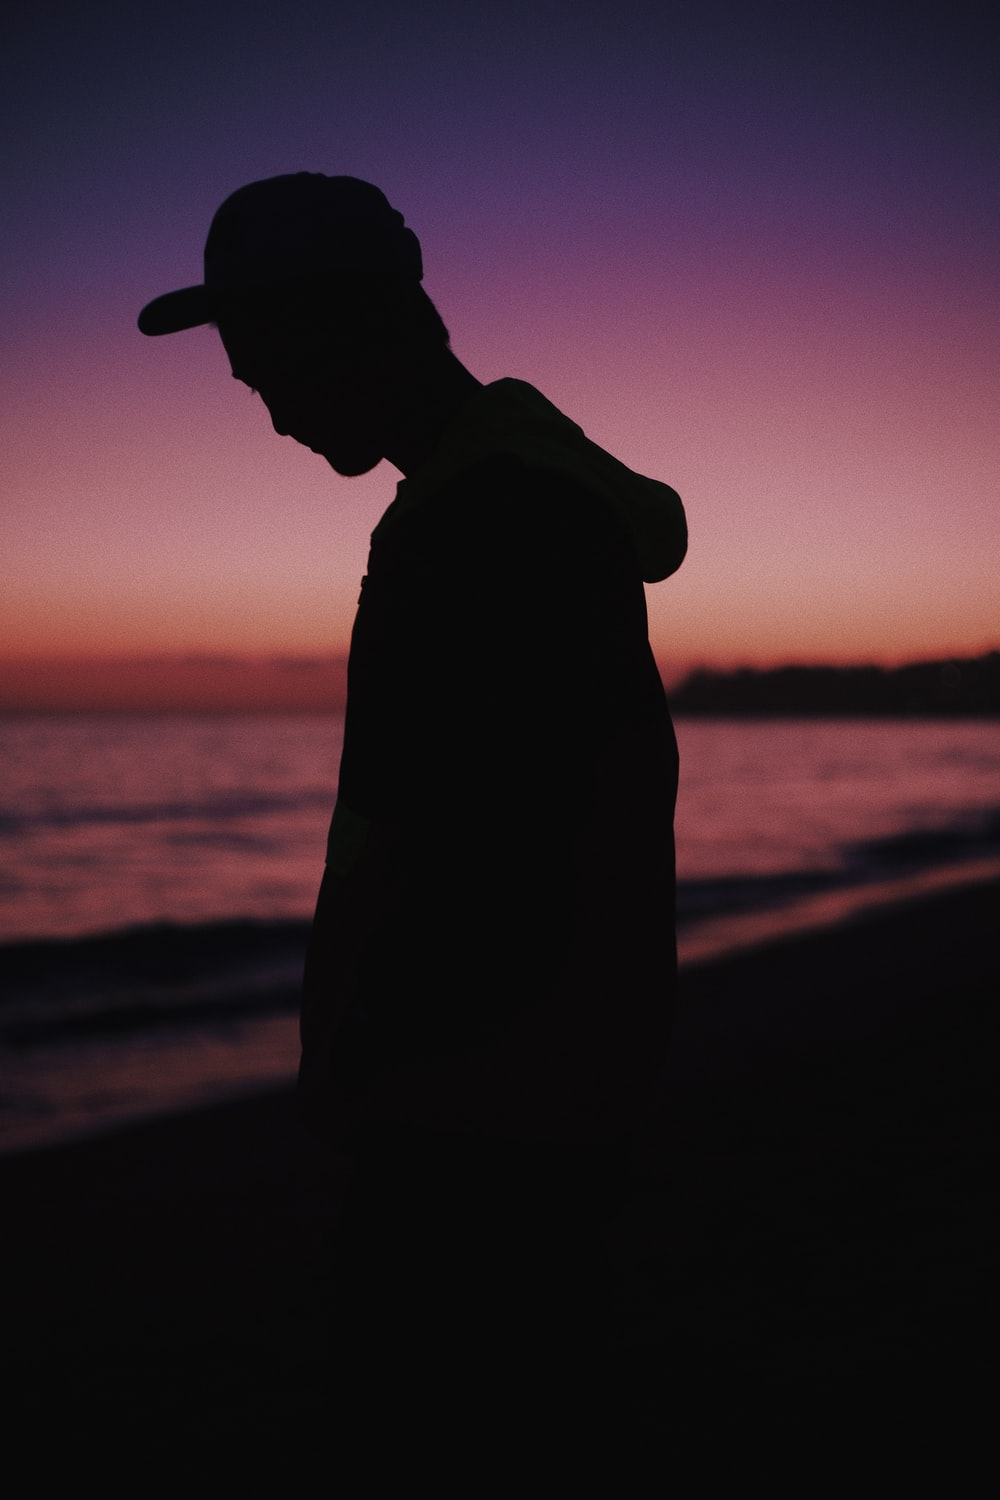 silhouette of man wearing hat during sunset